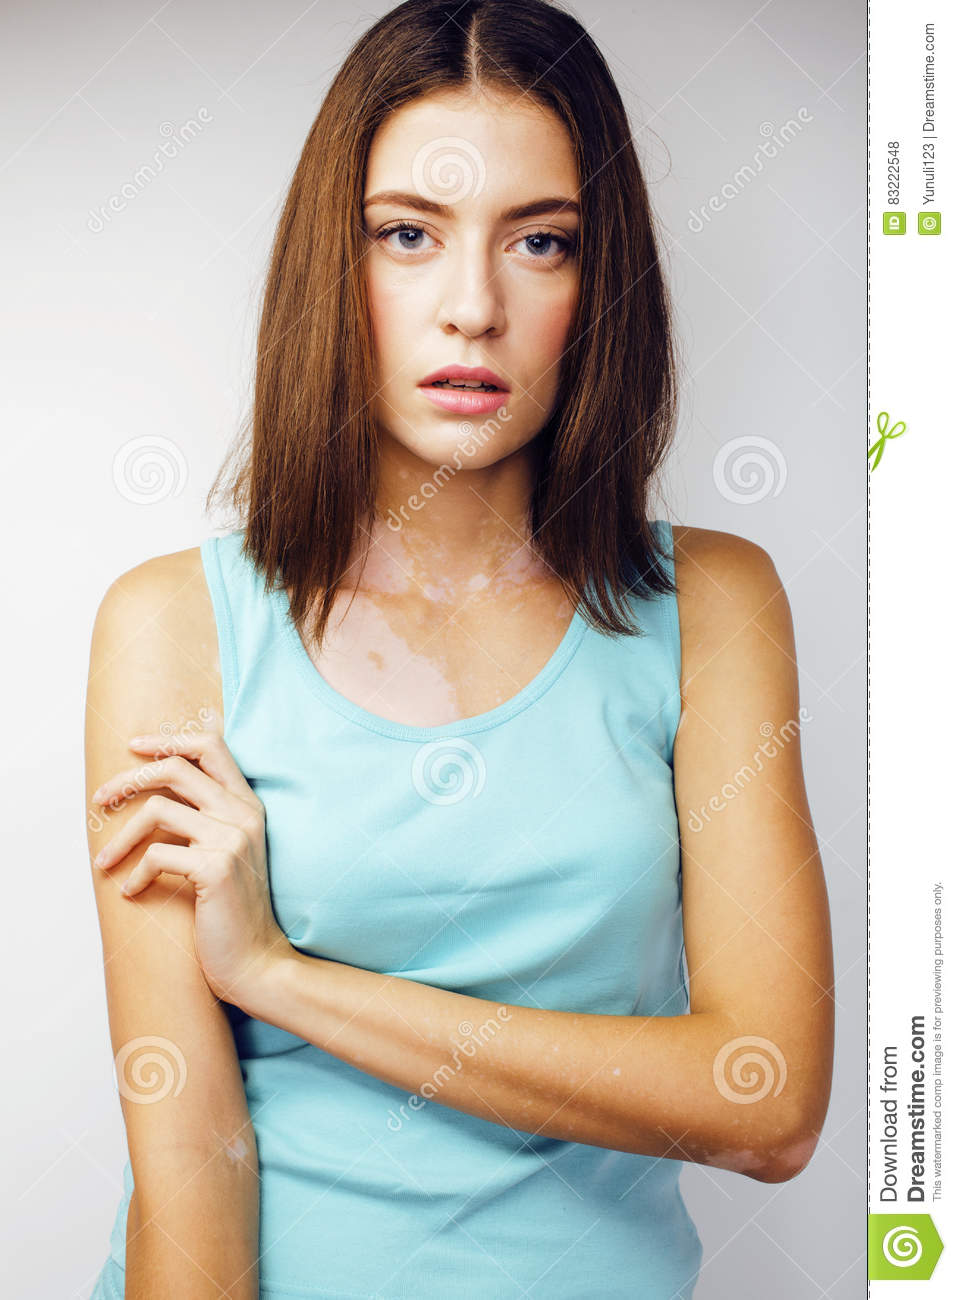 Beautiful Young Brunette Woman With Vitiligo Disease Close Up Isolated On White Positive Smiling Model Problems Concept Stock Photo Image Of Modern Color 83222548